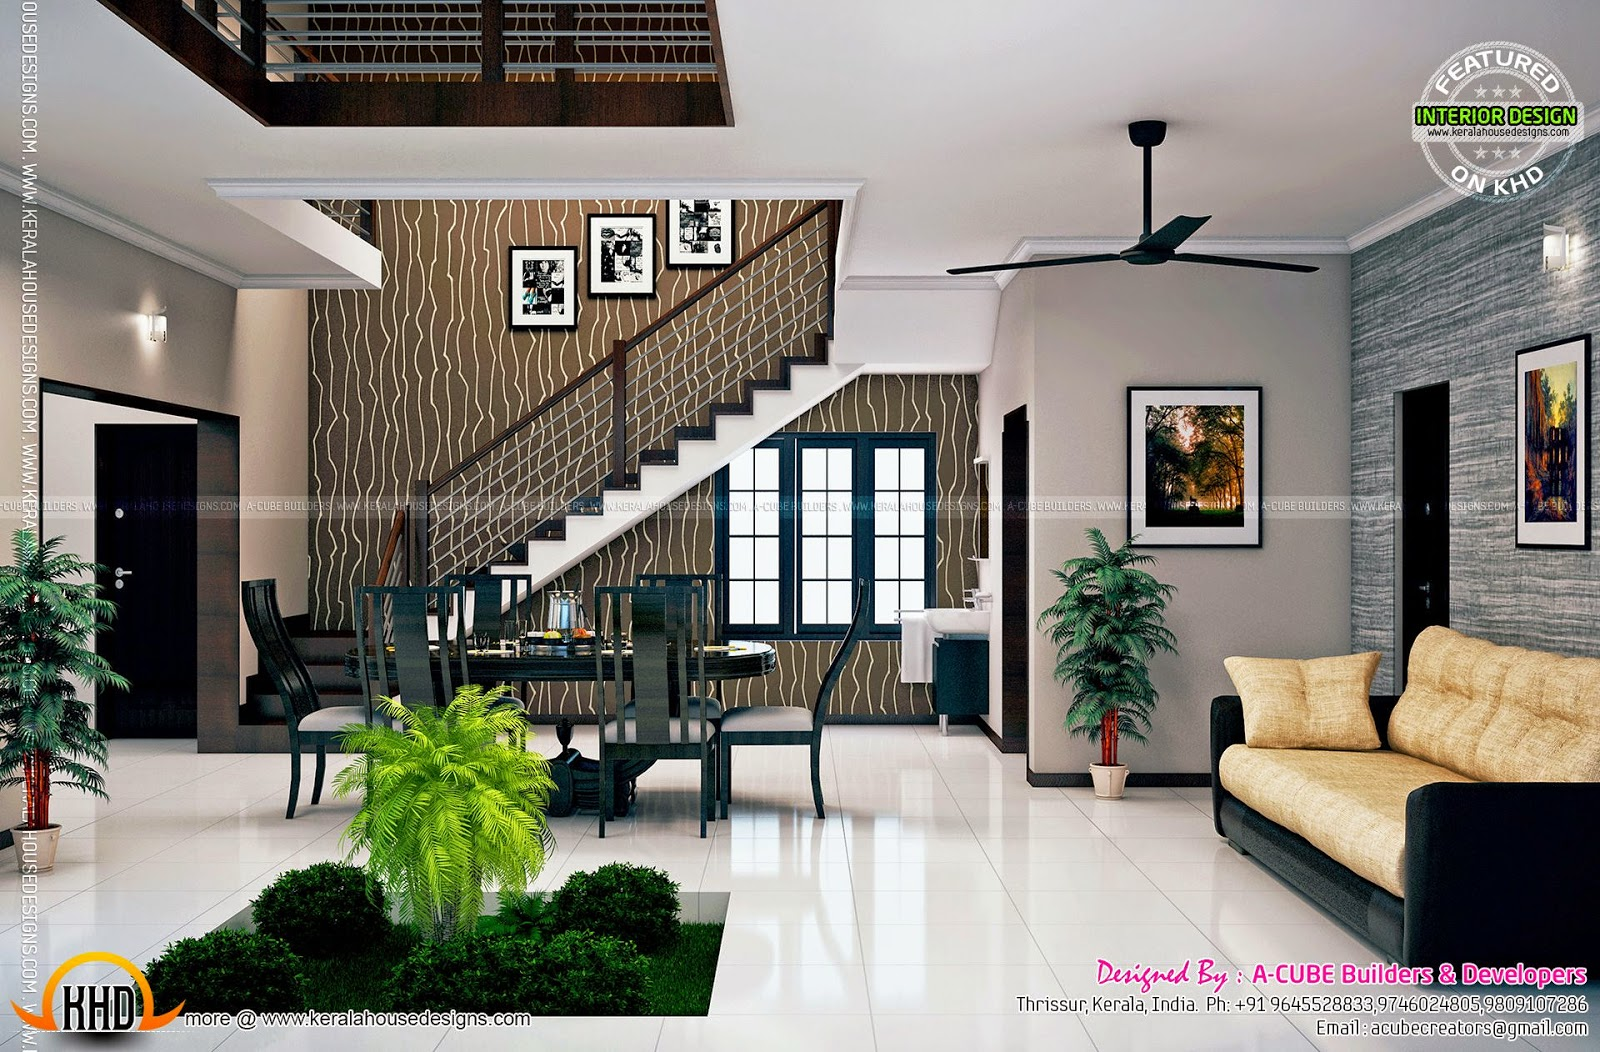 Kerala interior design ideas kerala home design and for Kerala home interior designs photos